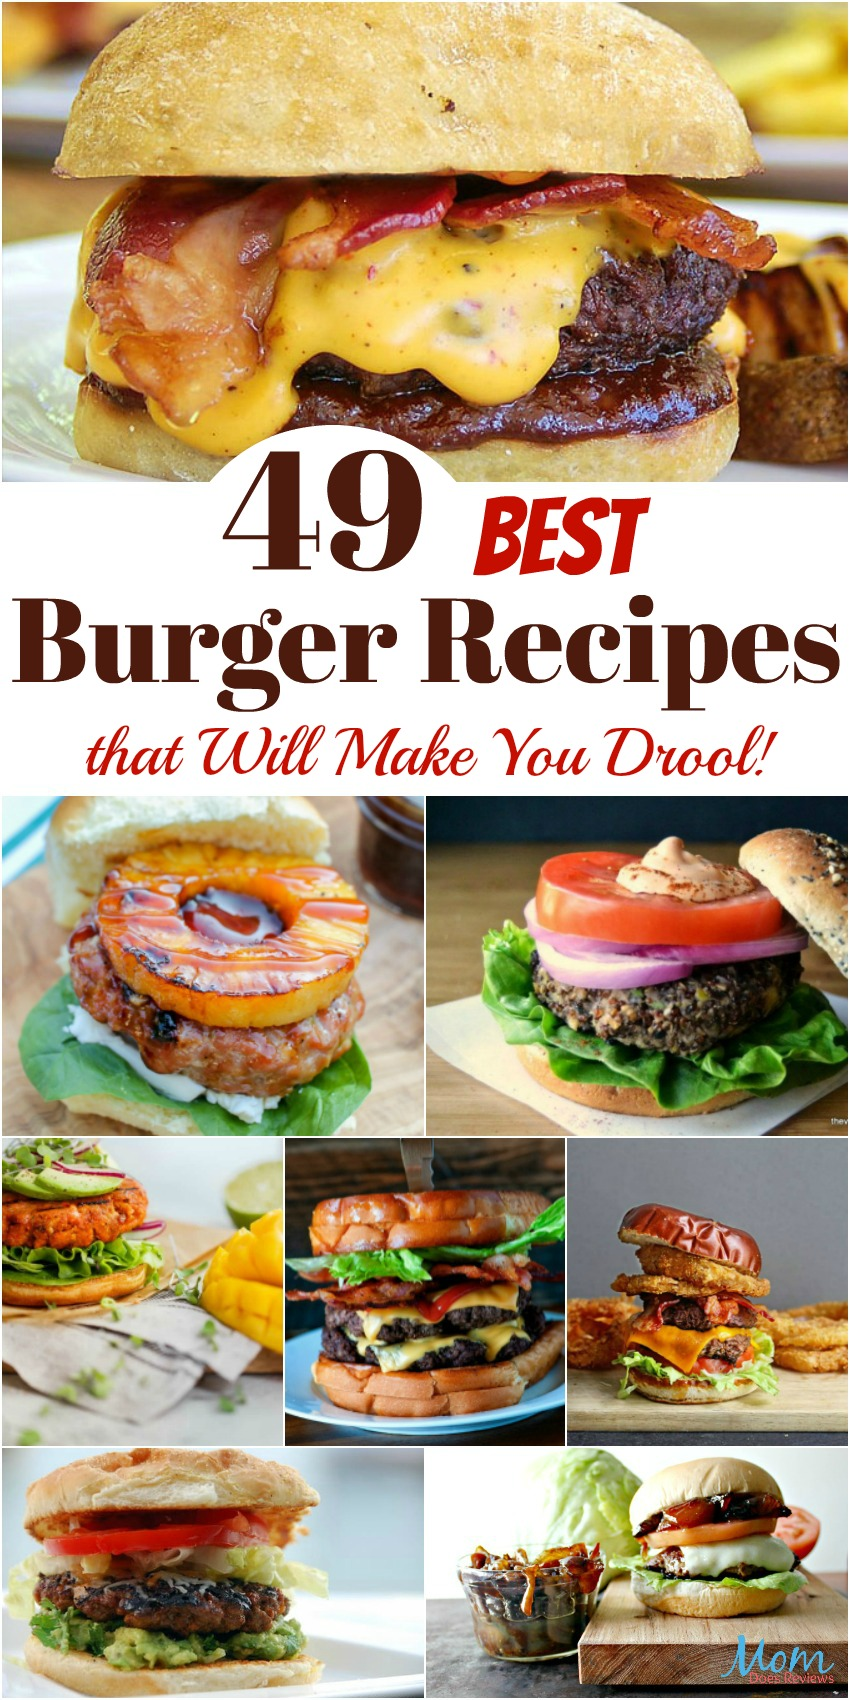 49 Best Burger Recipes that Will Make You Drool